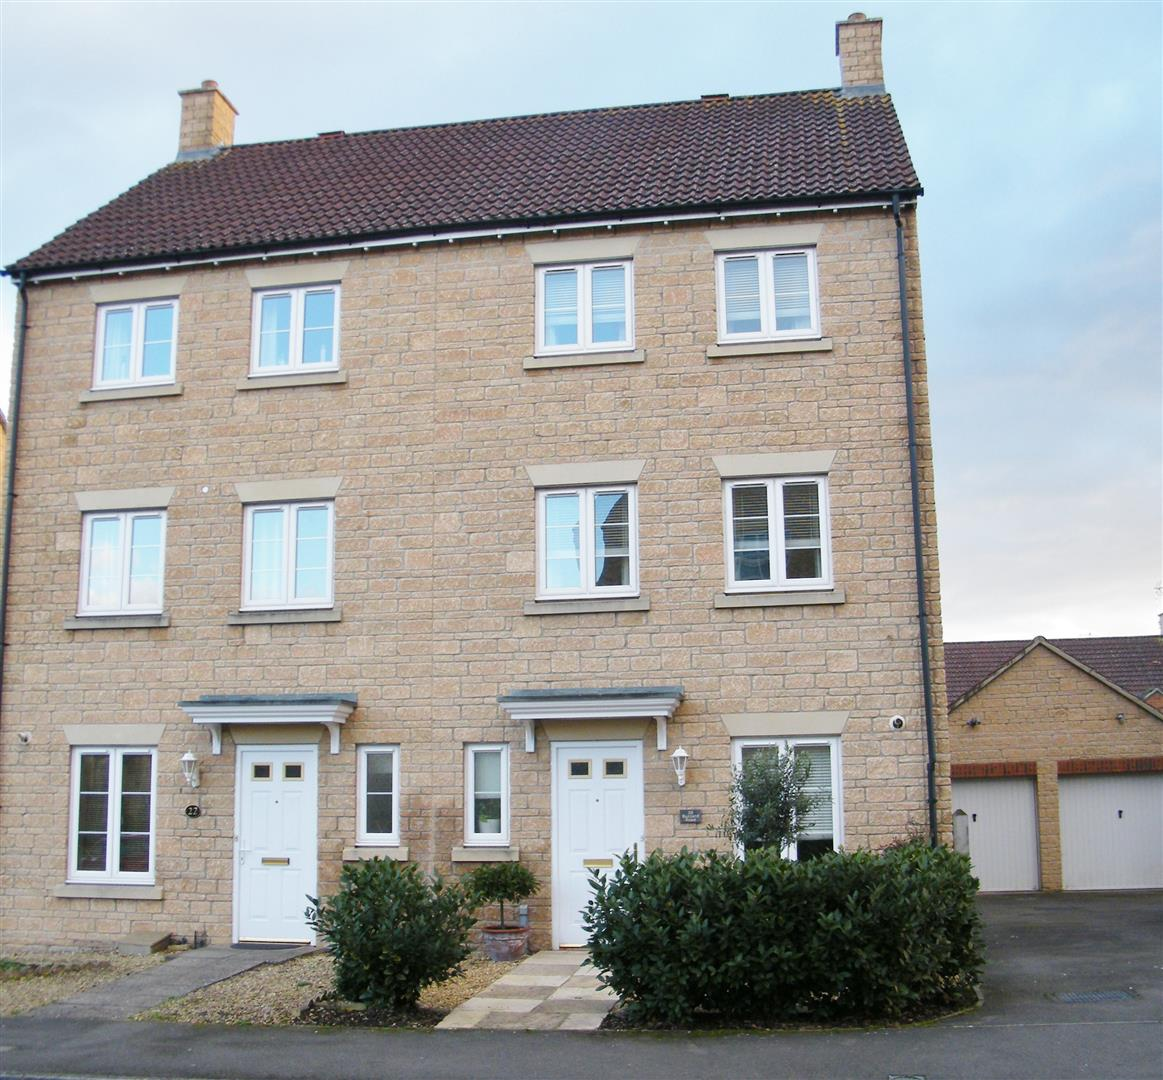 4 Bedrooms Semi Detached House for sale in Buzzard Road, Calne